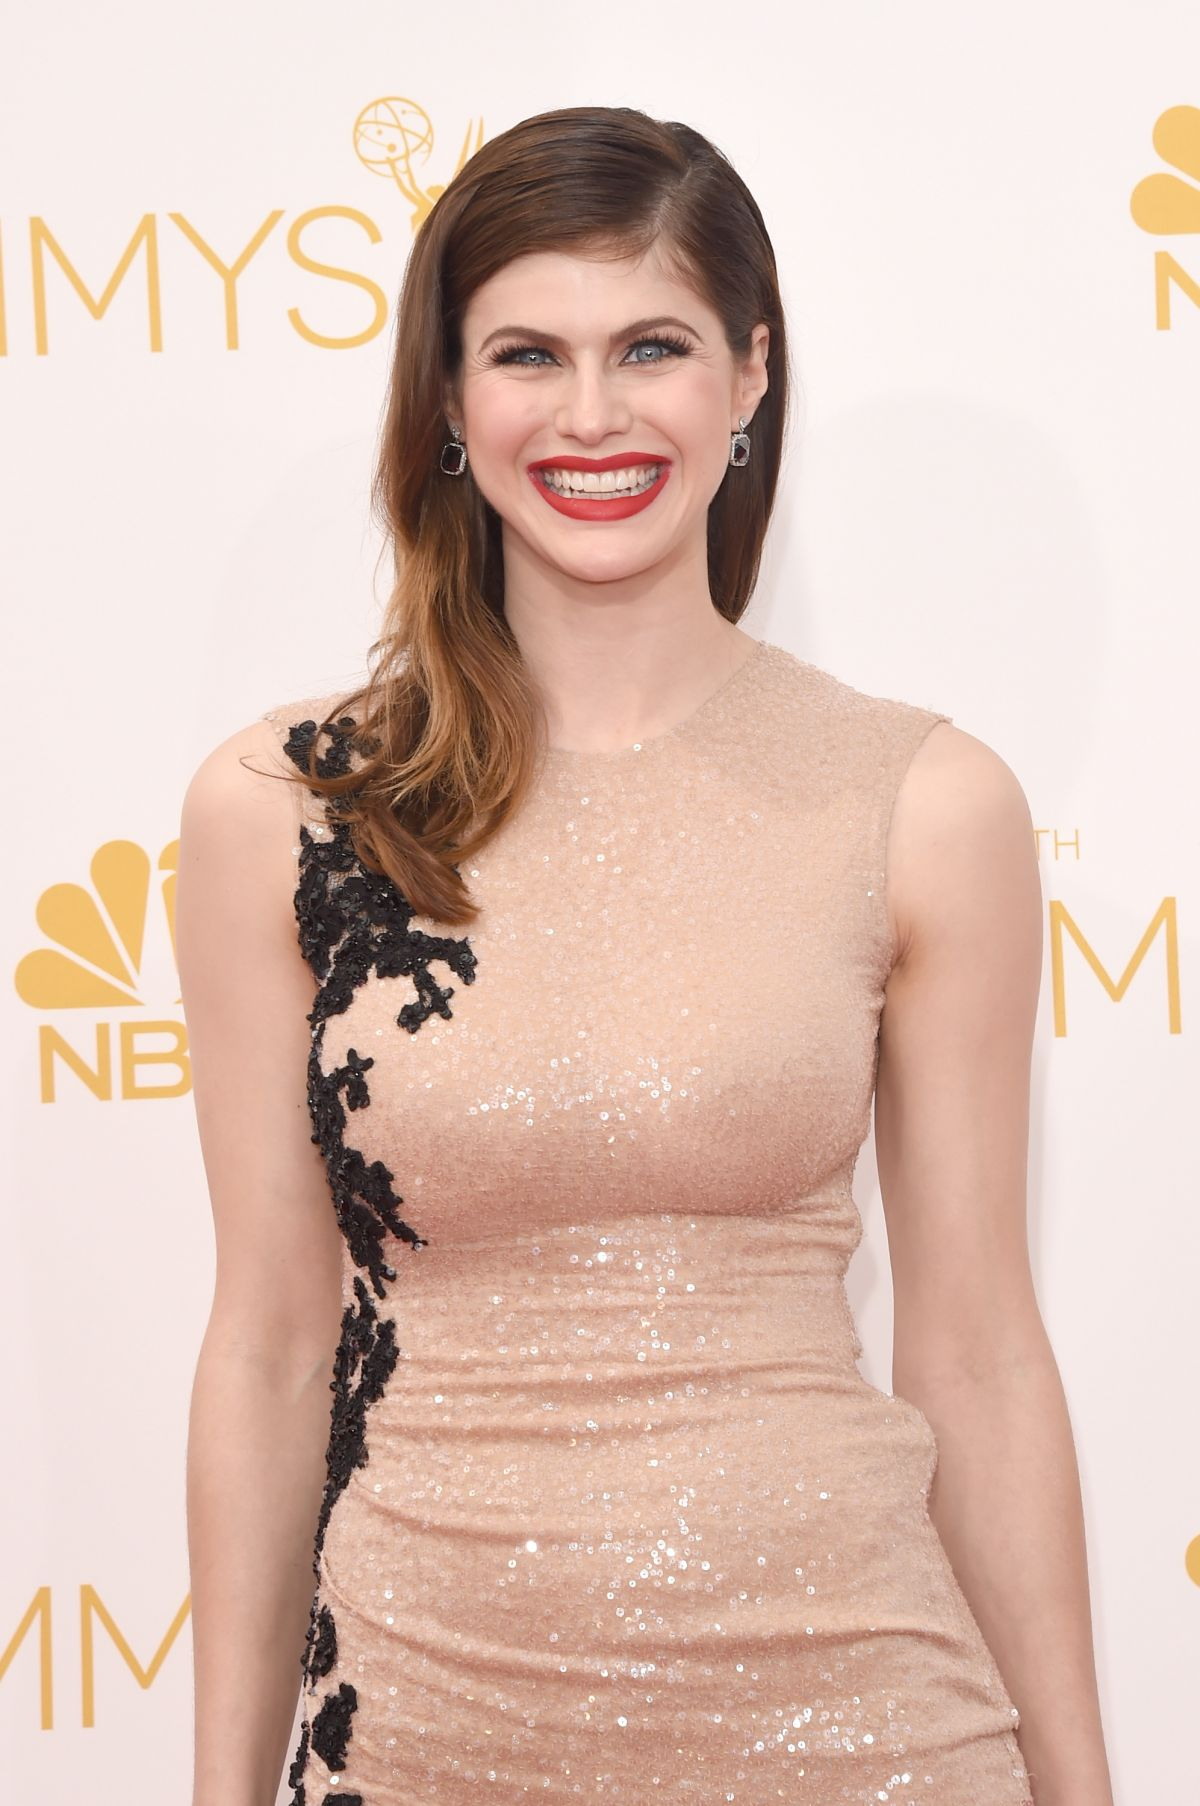 ALEXANDRA DADDARIO at 2014 Emmy Awards